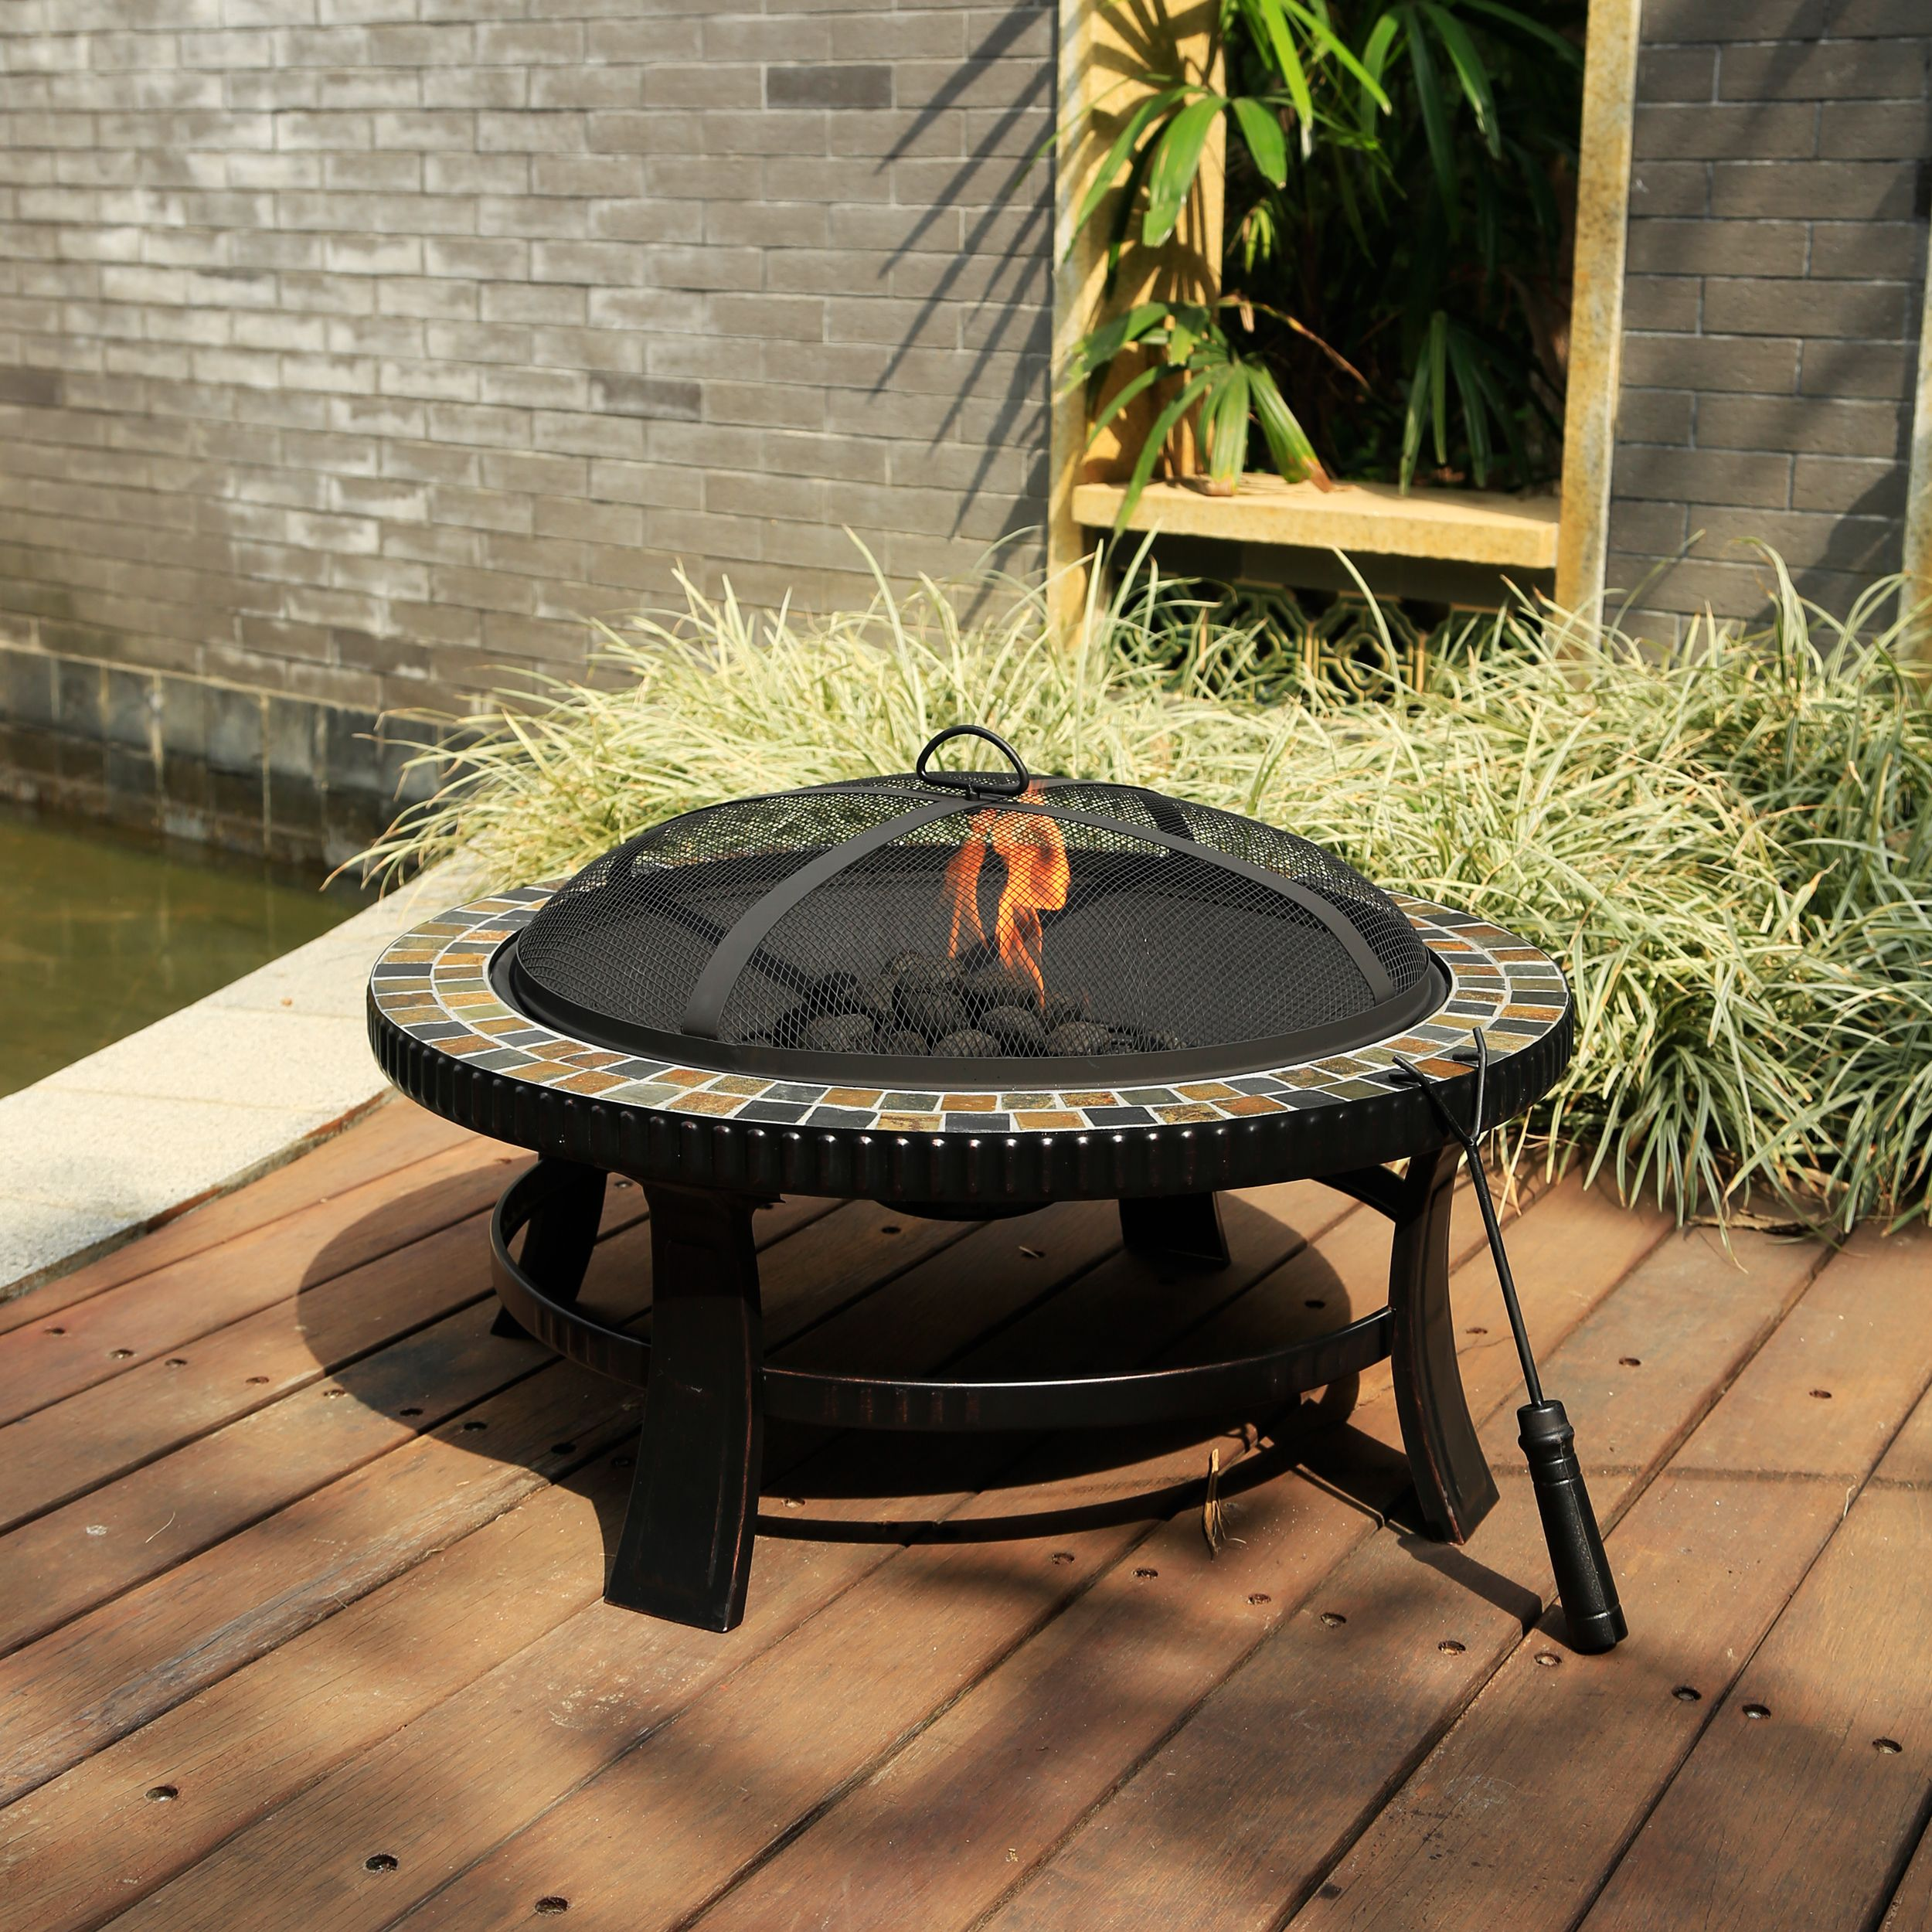 d00db9c33b8de804b1f6f07540e5d699 Top Result 50 Awesome Fire Pit Grill